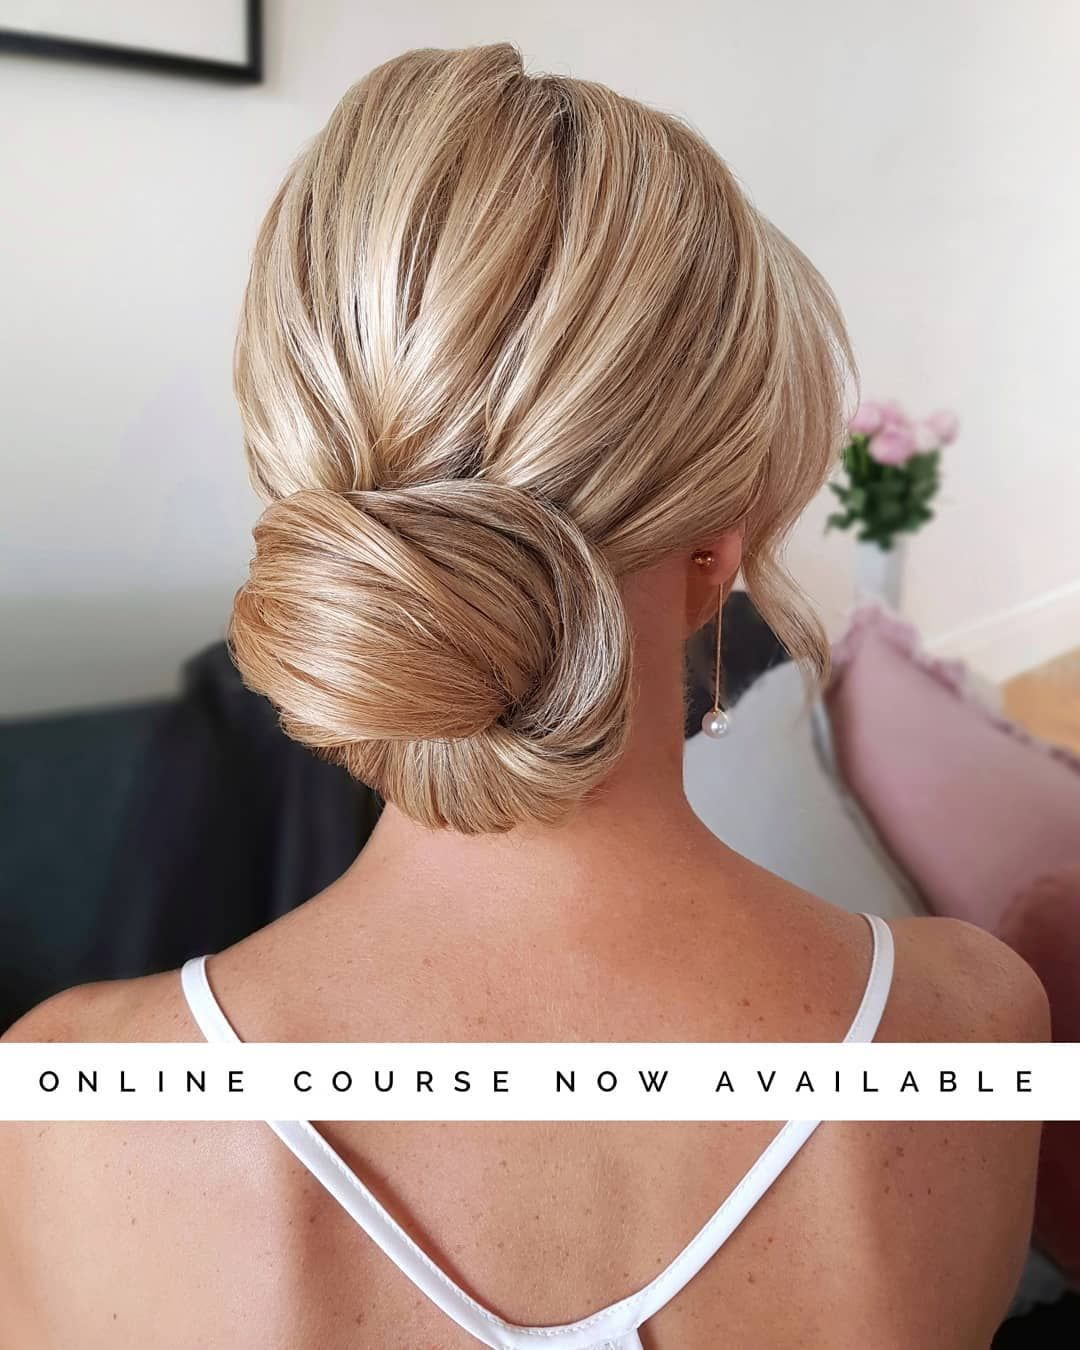 Melbourne Hair Stylist On Instagram Learn How To Master This Timeless And Classic Low Bun Currently Trending And Highly Requested So Many P Haruppsattning